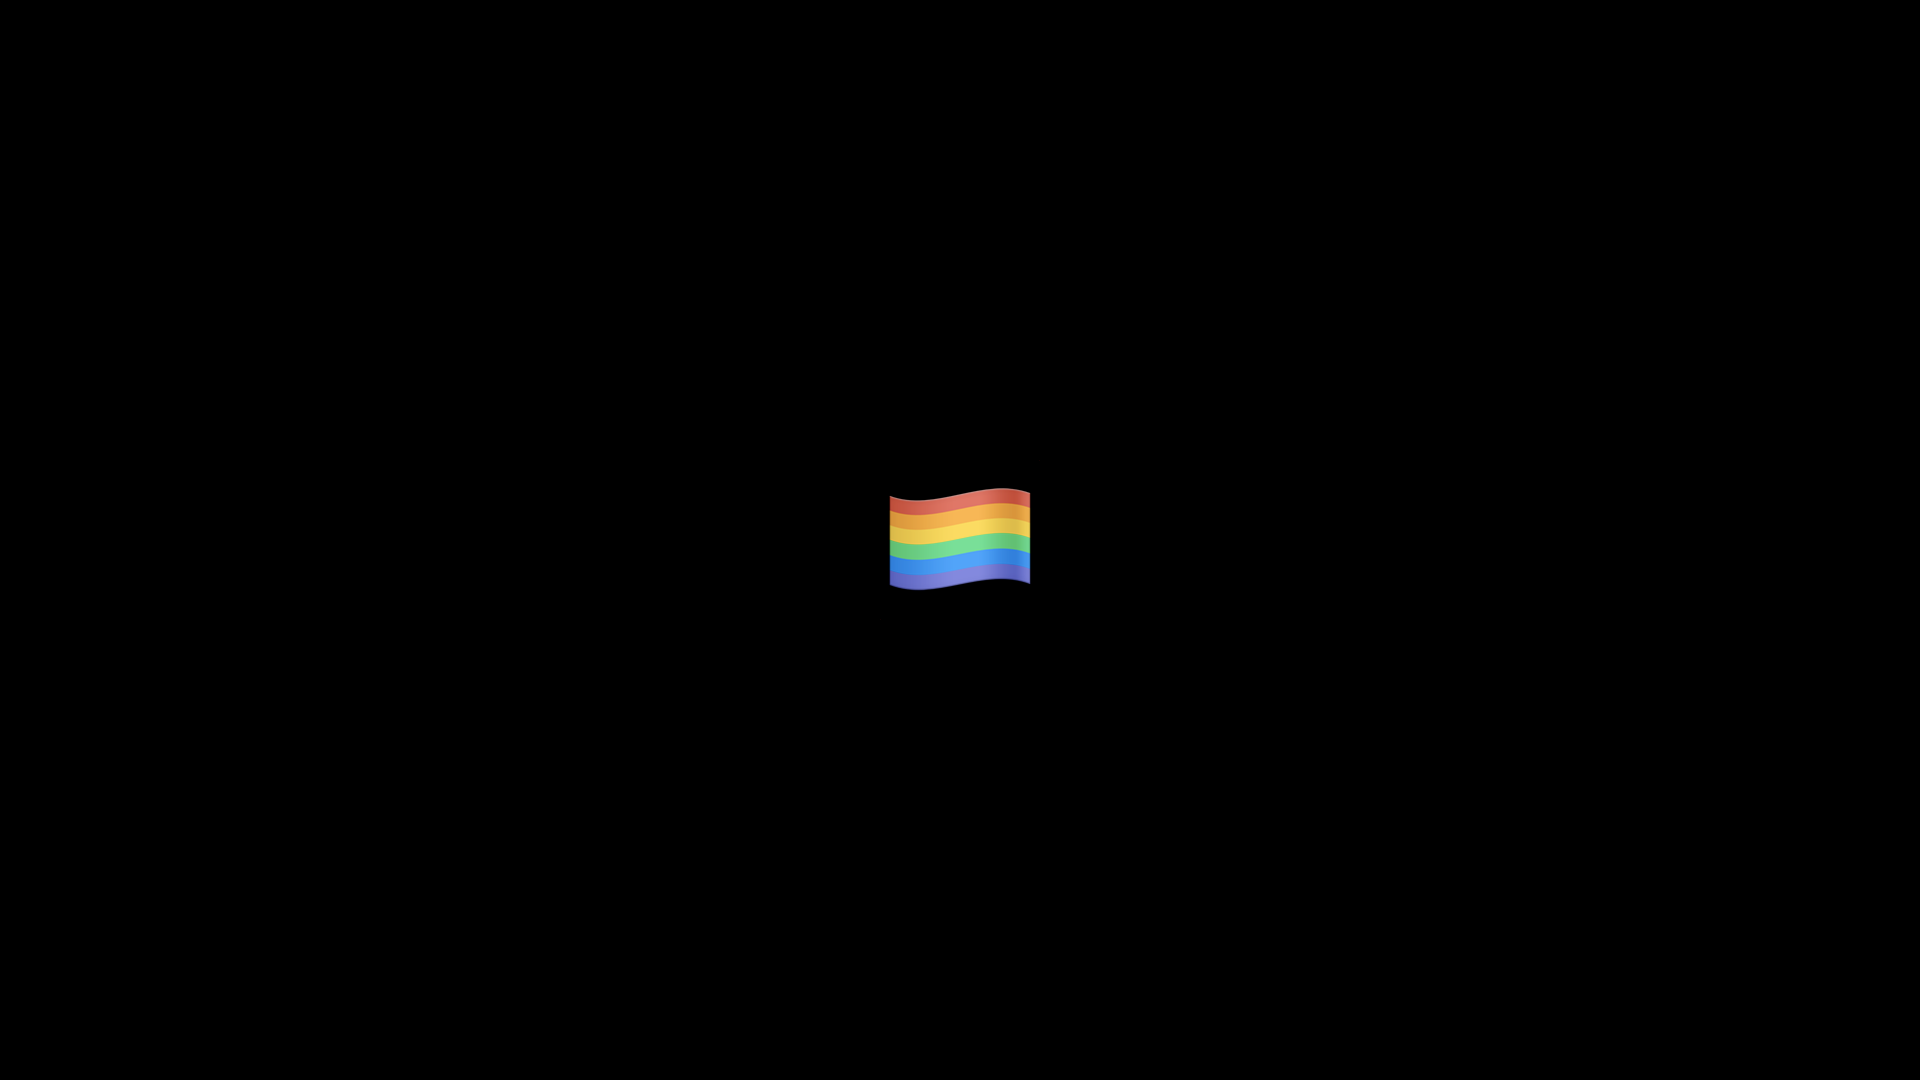 Rainbow flag on a black field